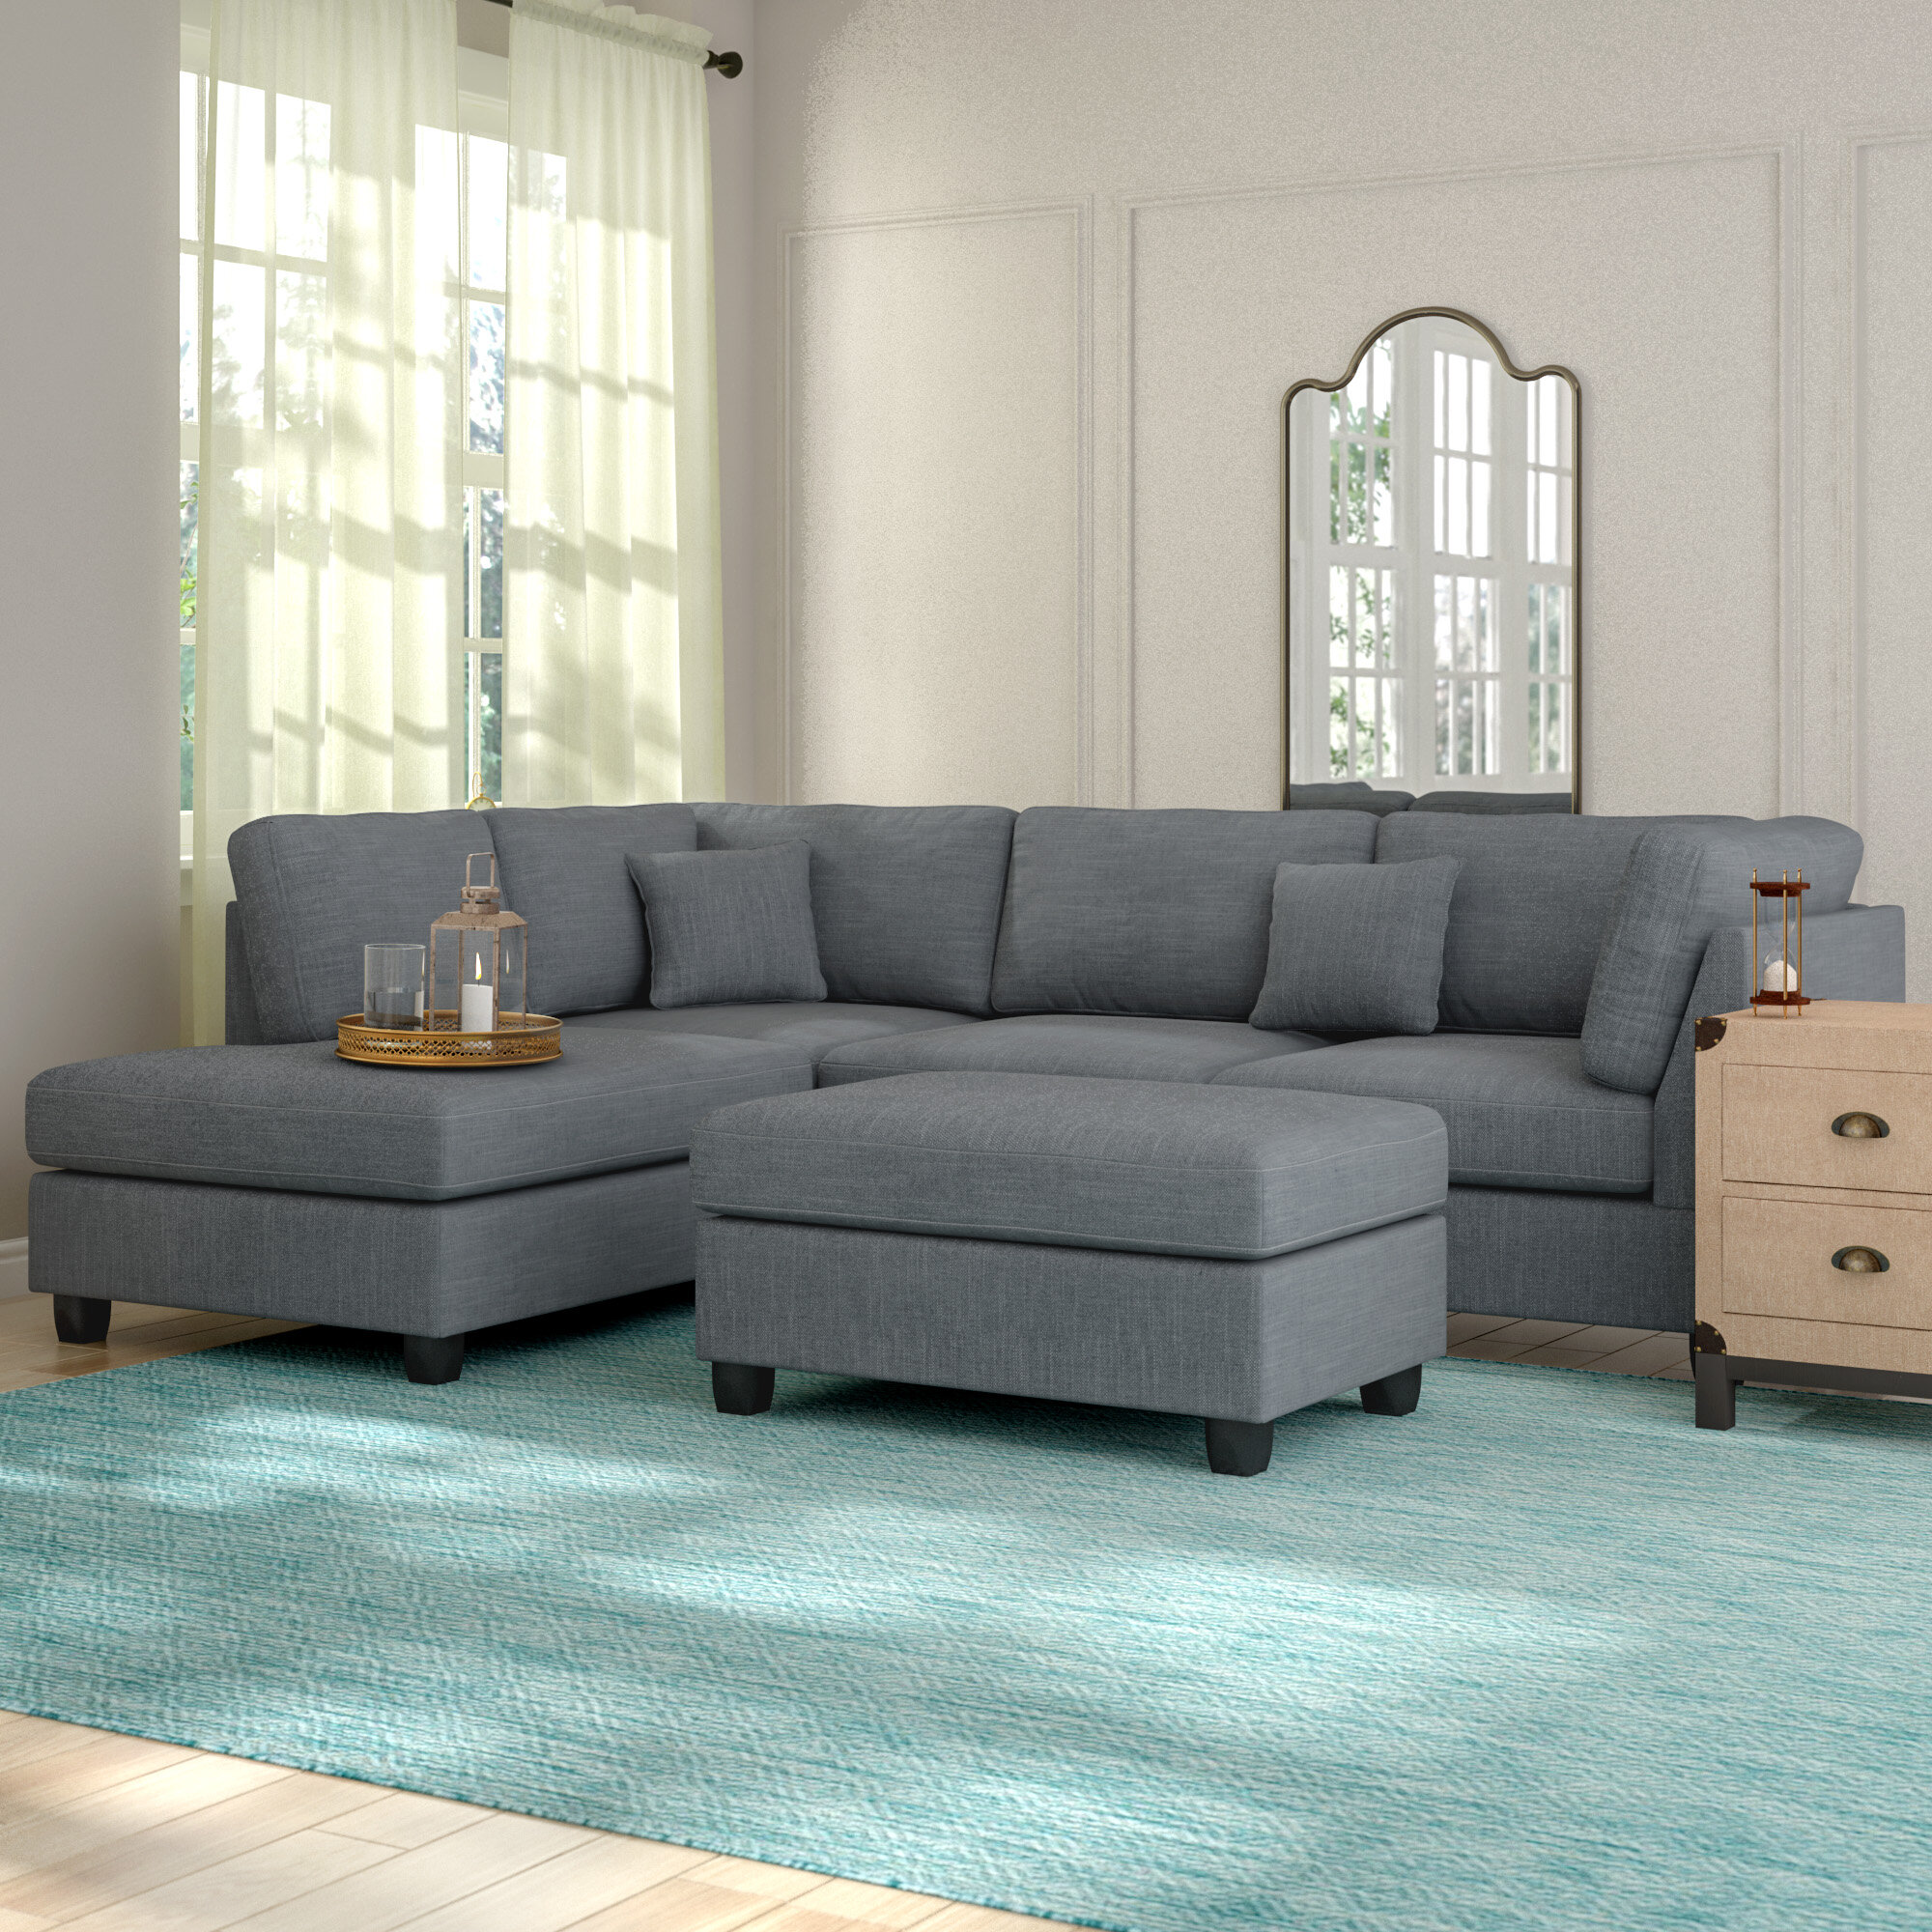 white sofa hardwood with using on oversized living shape chaise floor style room velvet track armrest couch l affordable blue sofas placed sectional gray